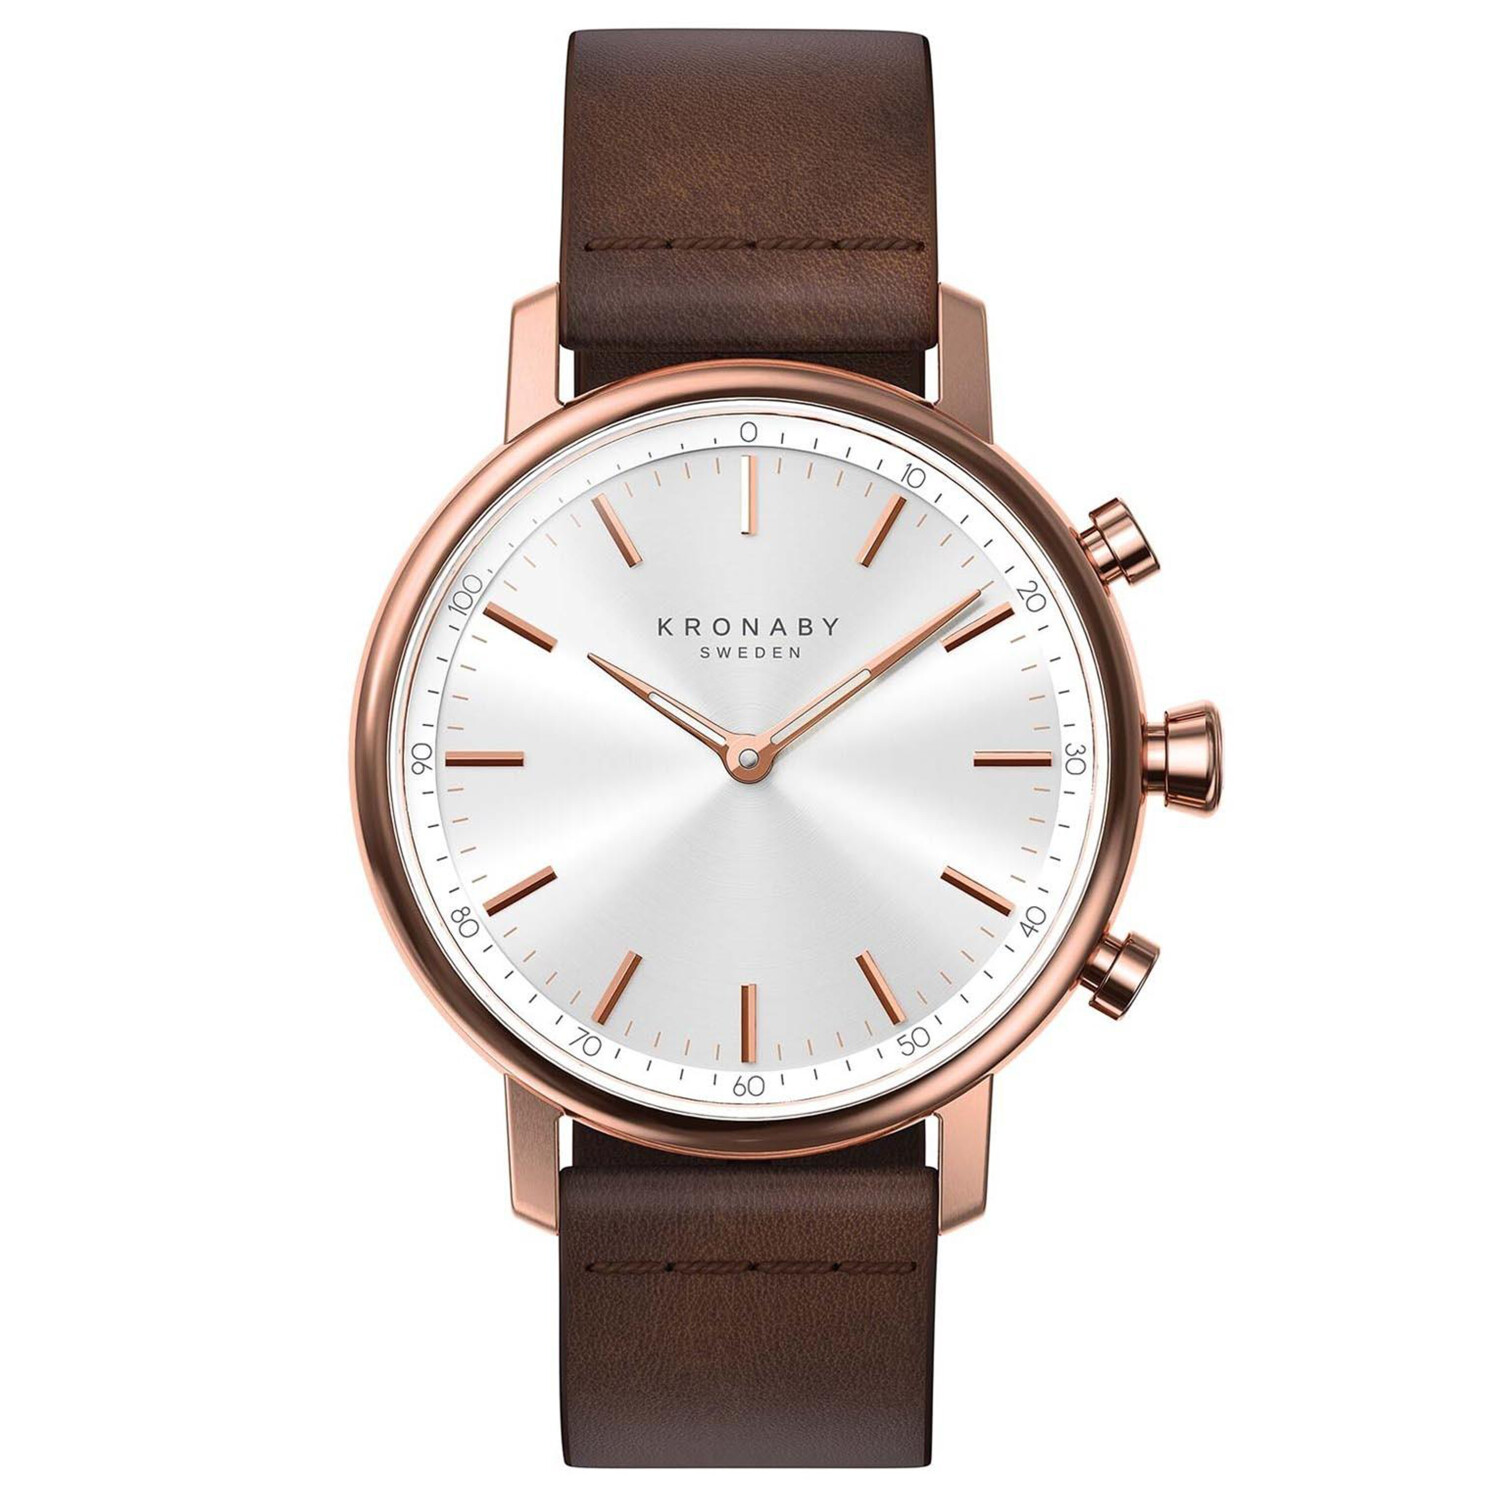 Kronaby Carat S1401-1 Brown Leather Automatic Self Wind Smart Watch